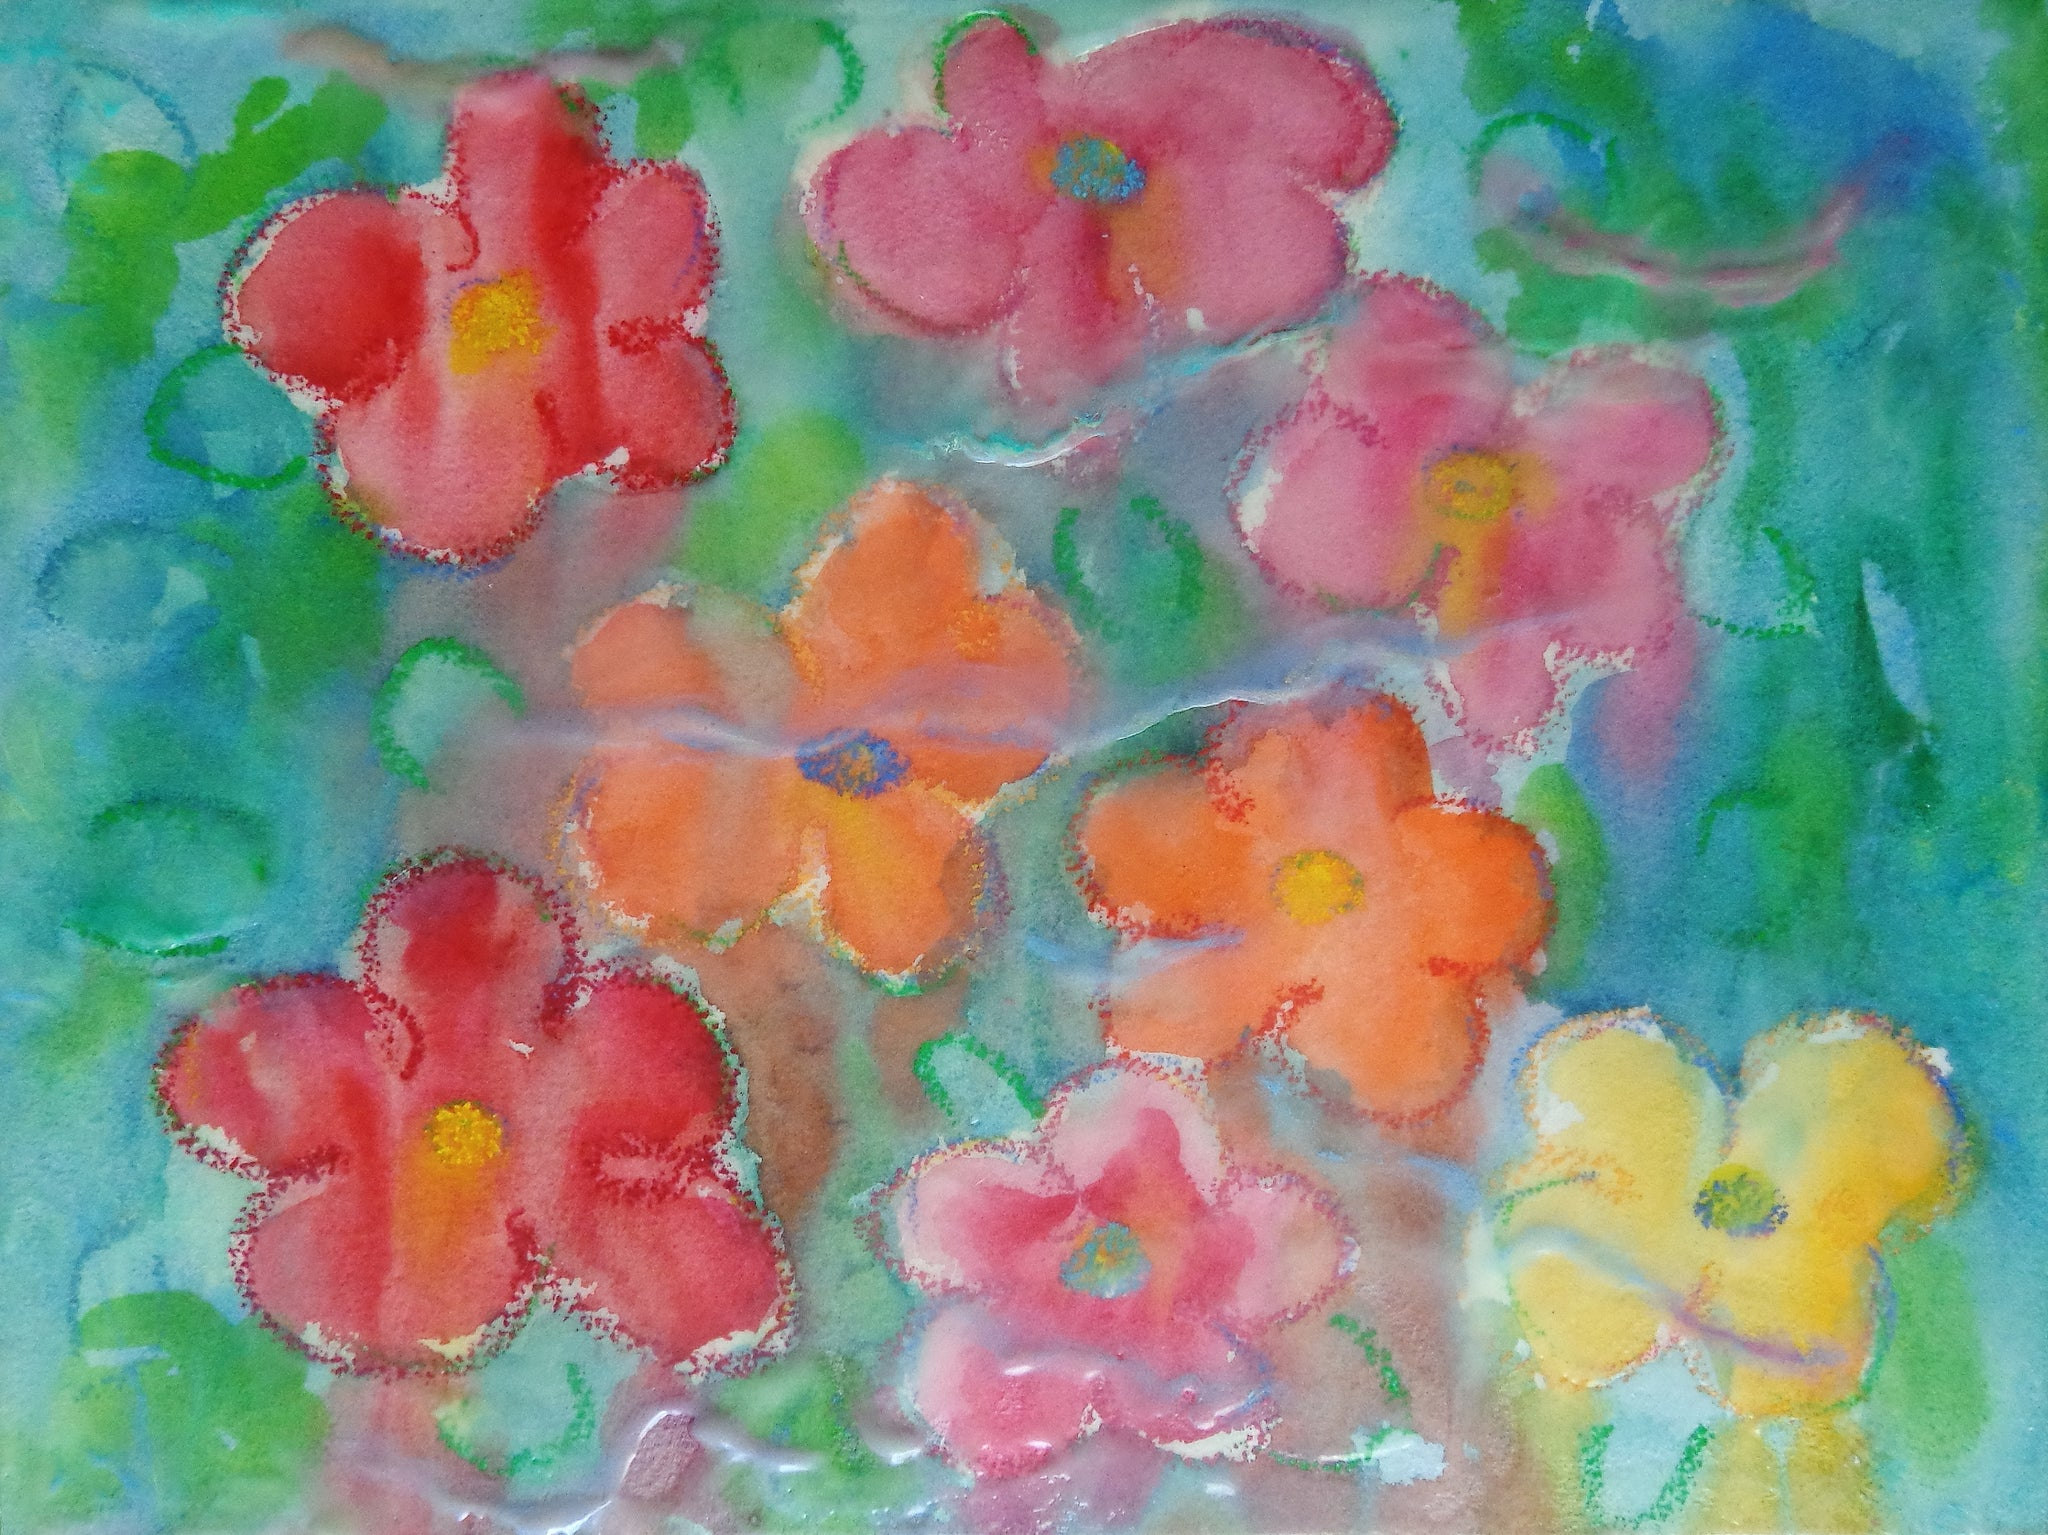 An encaustic, watercolor & oil pastel painting of flowers as an homage to Warhol's flower series.